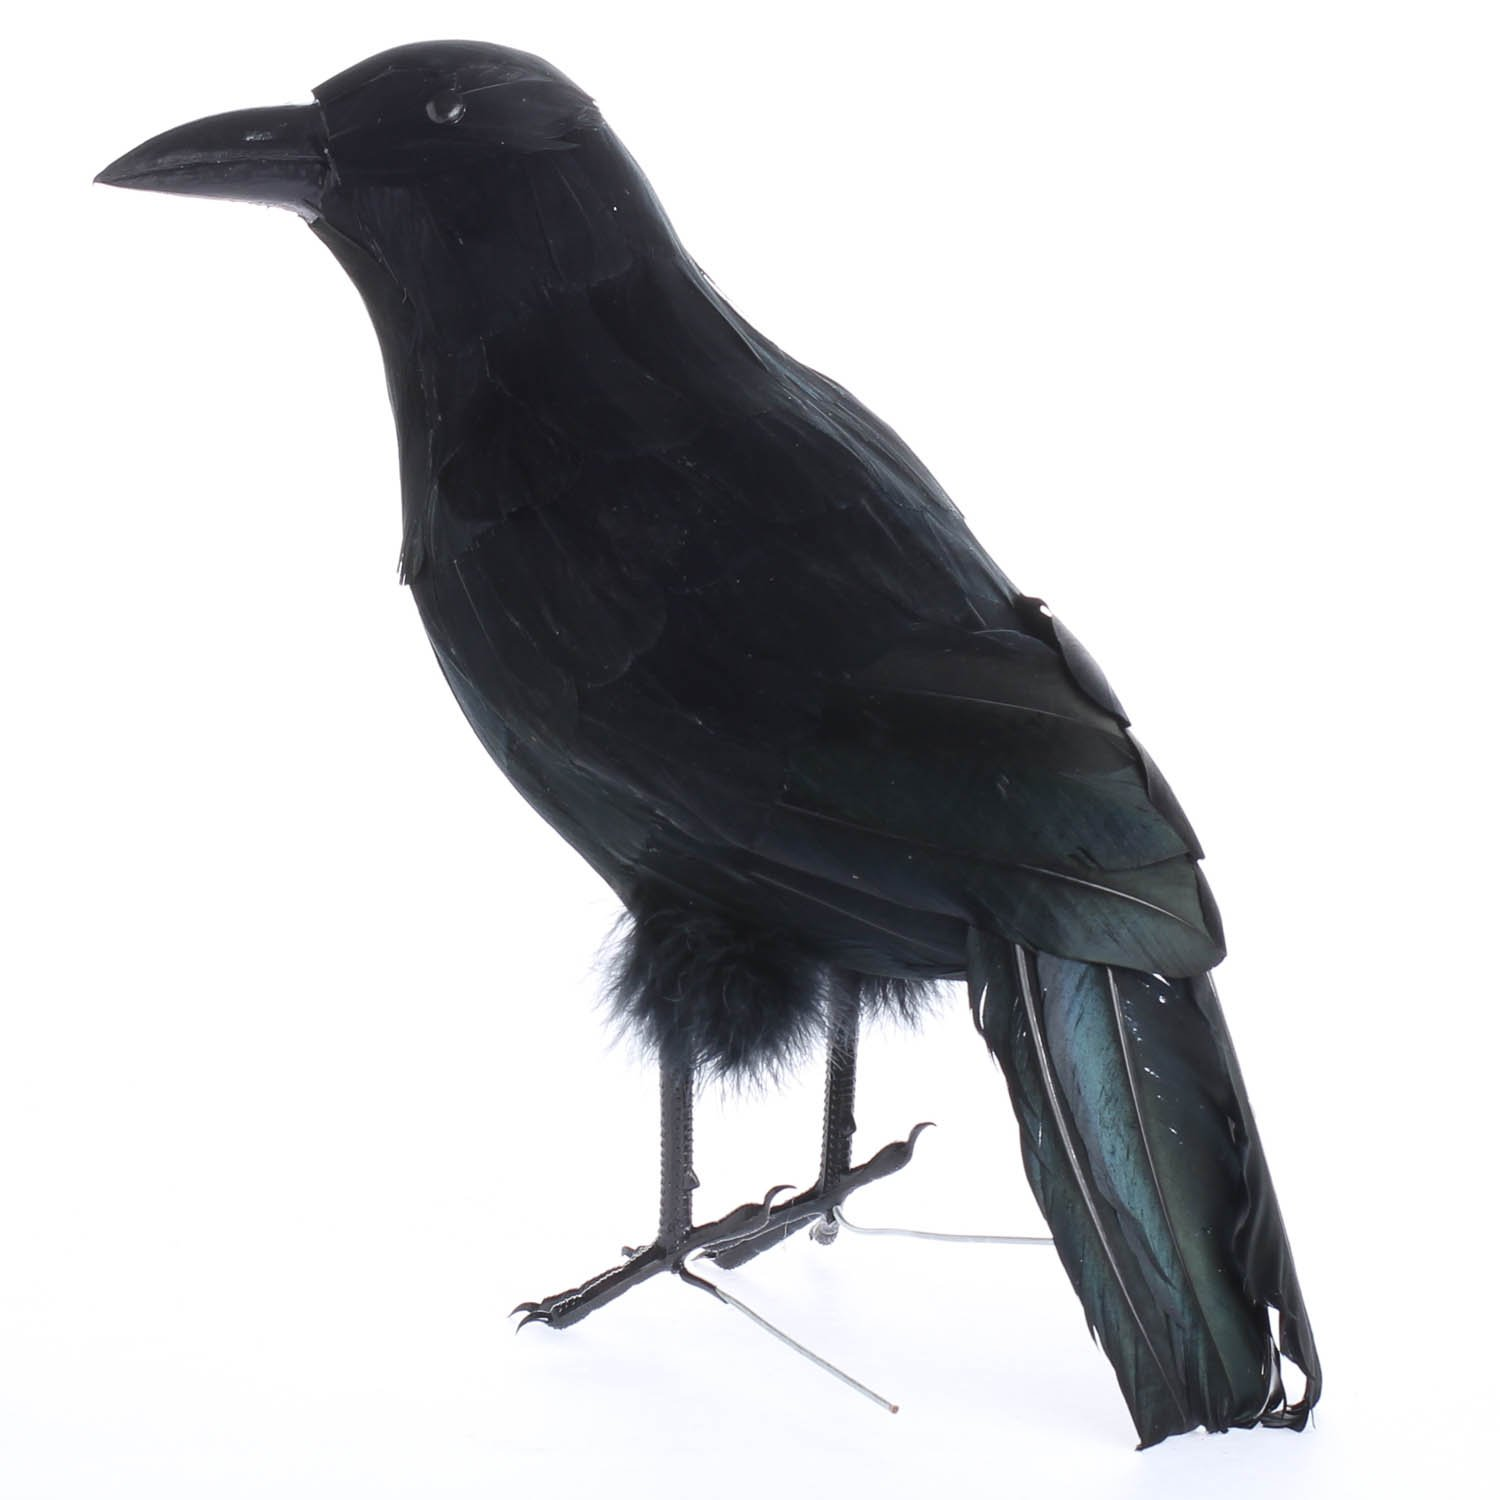 Black Feathered Large Halloween 13'' Artificial Crow; Very Realistic Looking! by Unknown (Image #4)